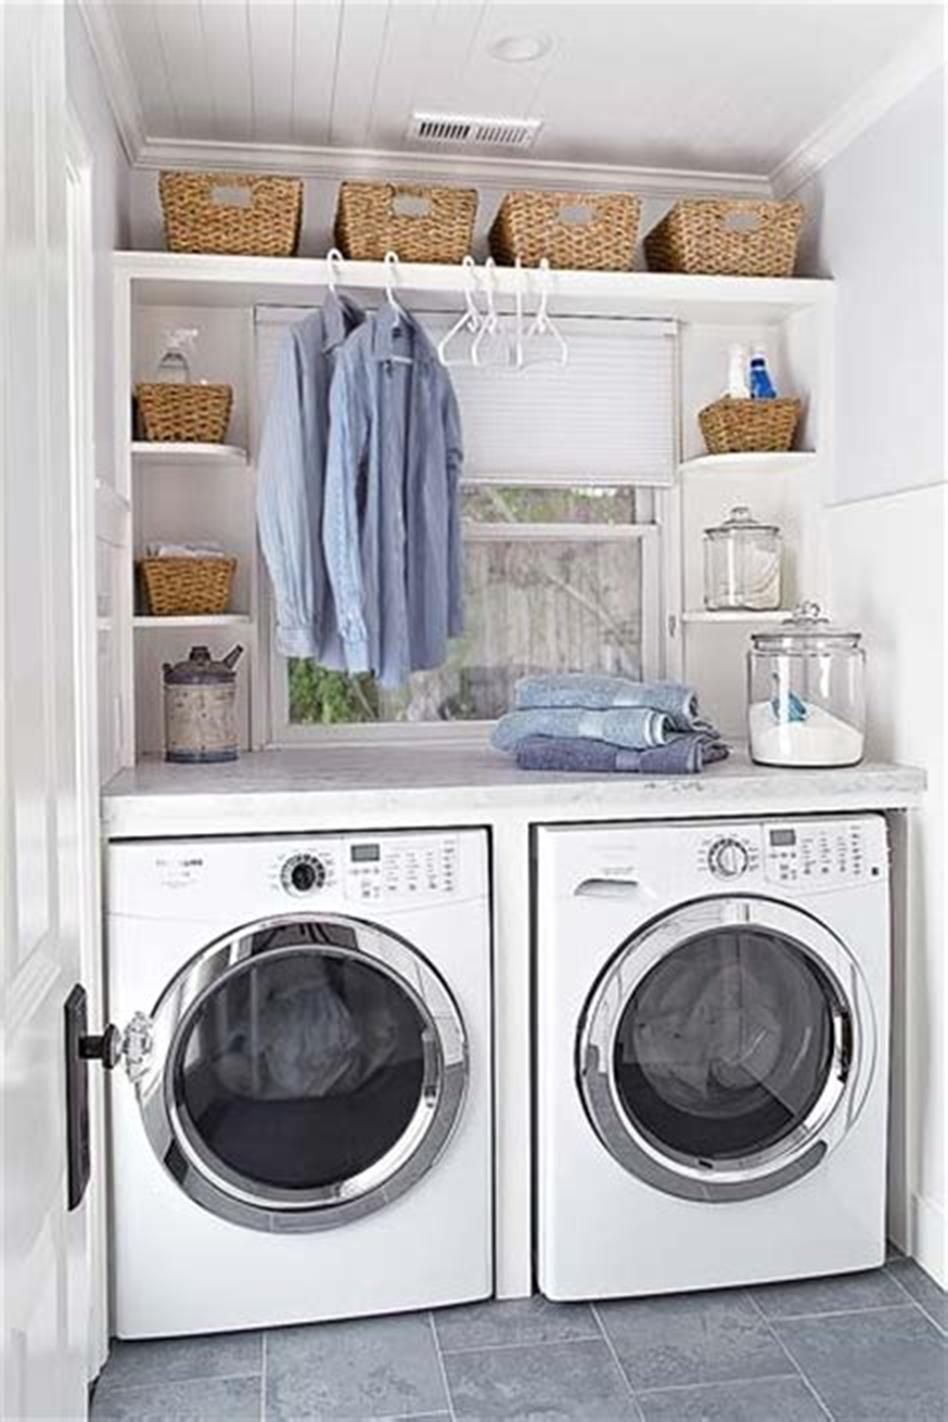 31 Perfect Laundry Room Storage Ideas For Small Rooms 3 Laundry Room Storage Perfect Laundry Room Small Laundry Rooms Laundry room storage ideas